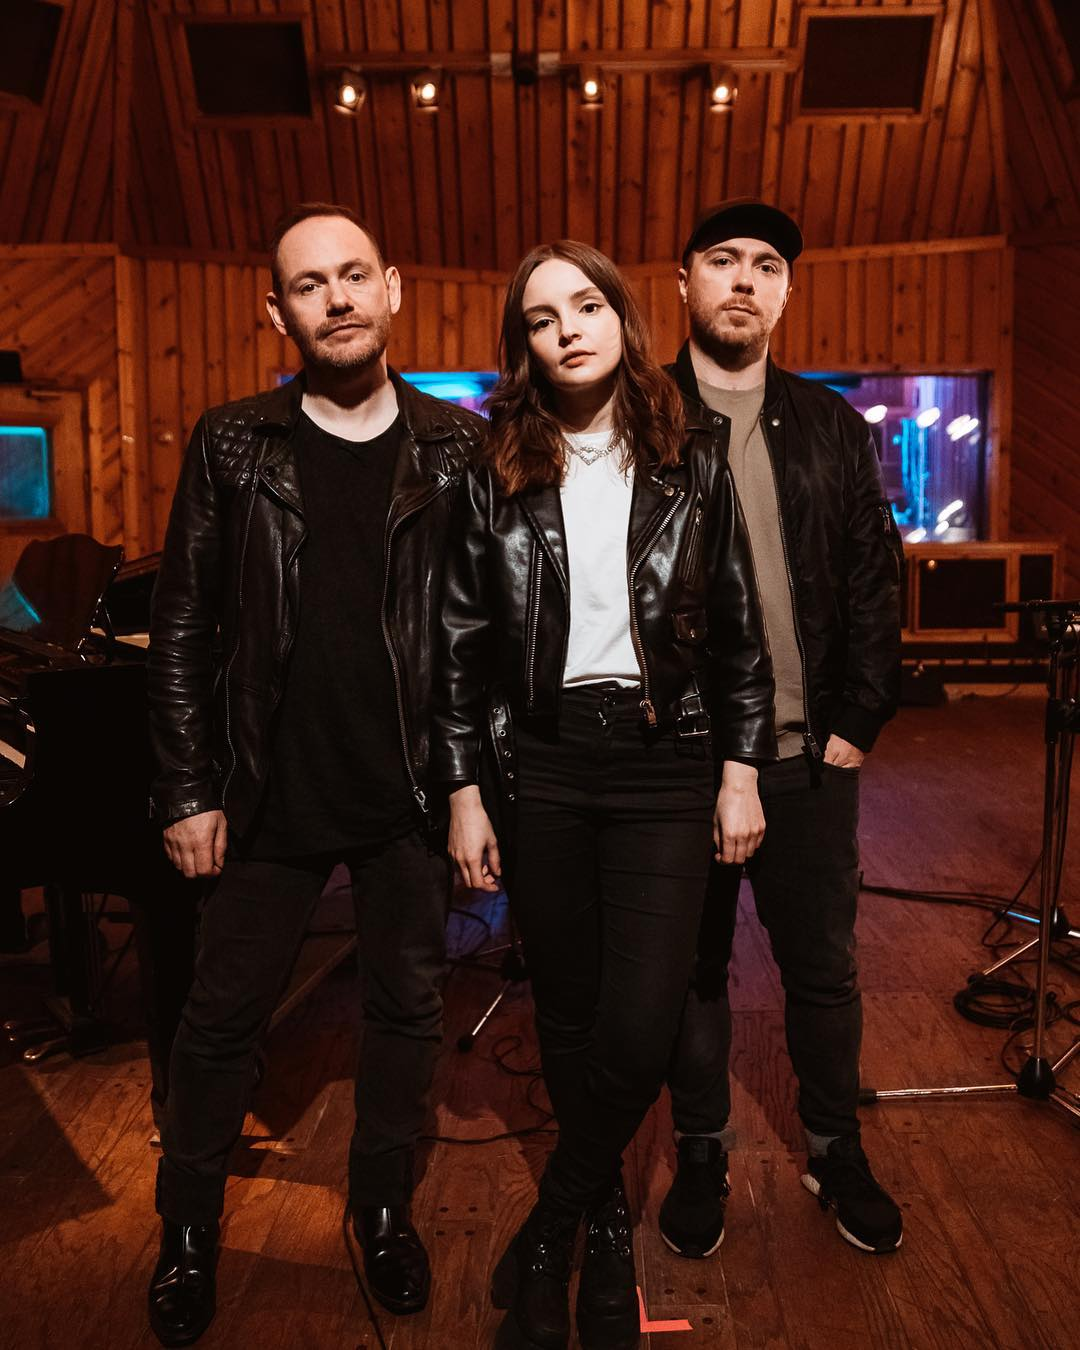 Watch CHVRCHES' Beautiful Acoustic Session on the Honda Stage at Power Station